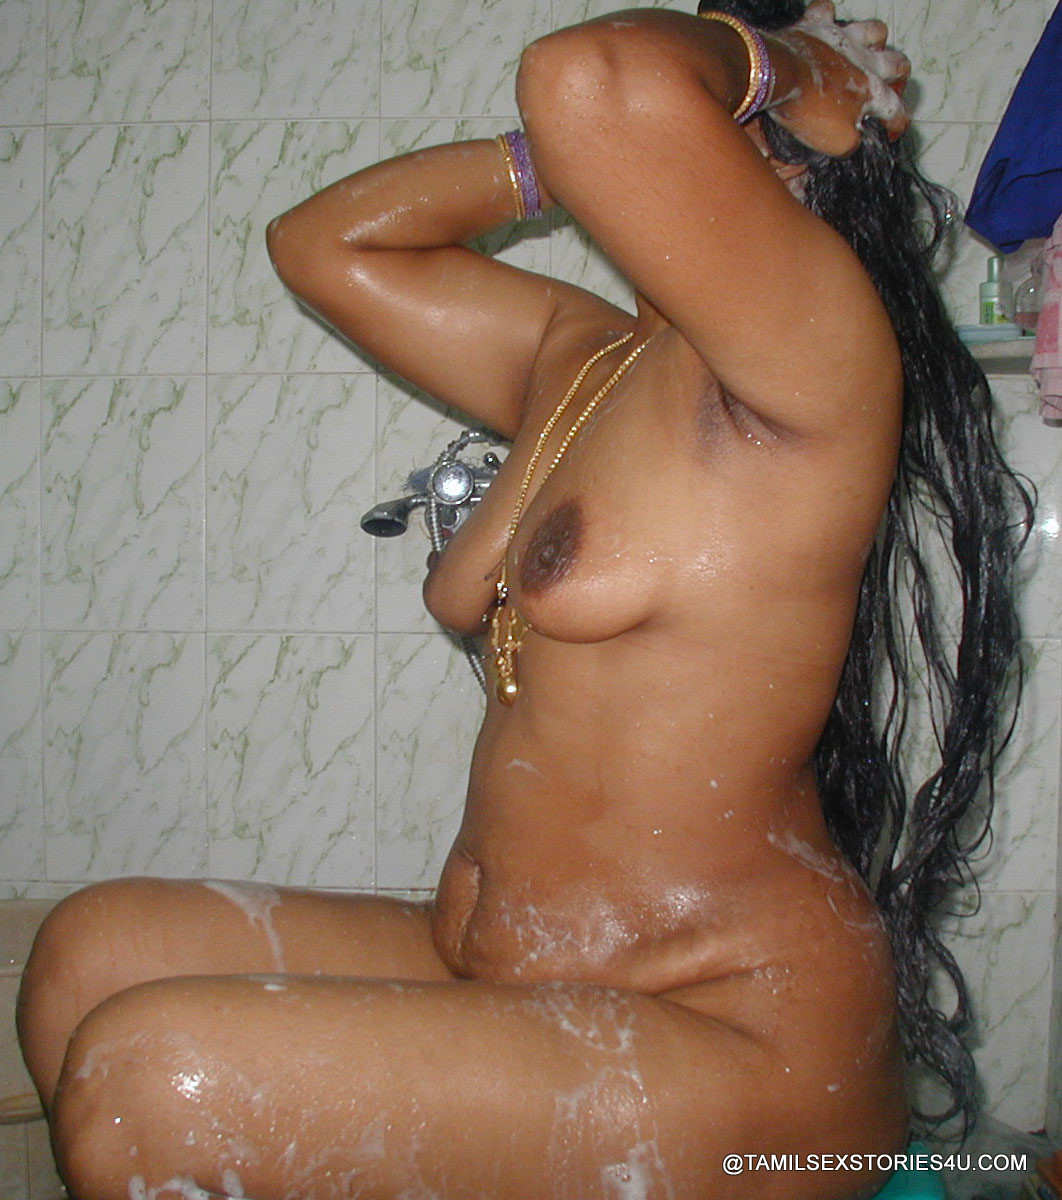 Tamil auntie porno photos